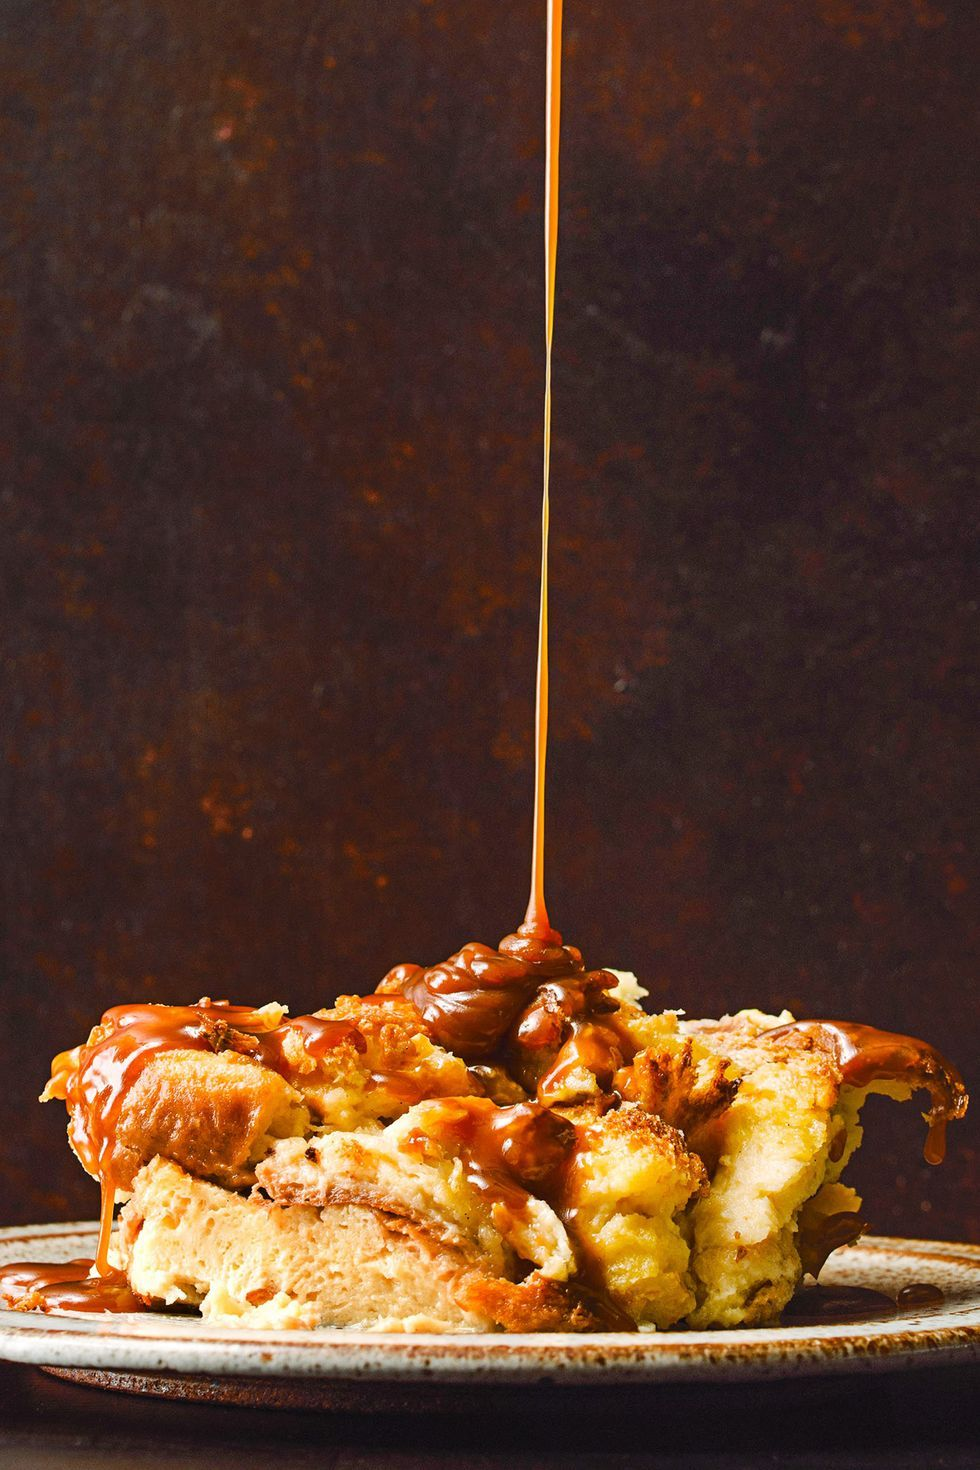 Brioche Bread Pudding with Bourbon-Caramel Sauce